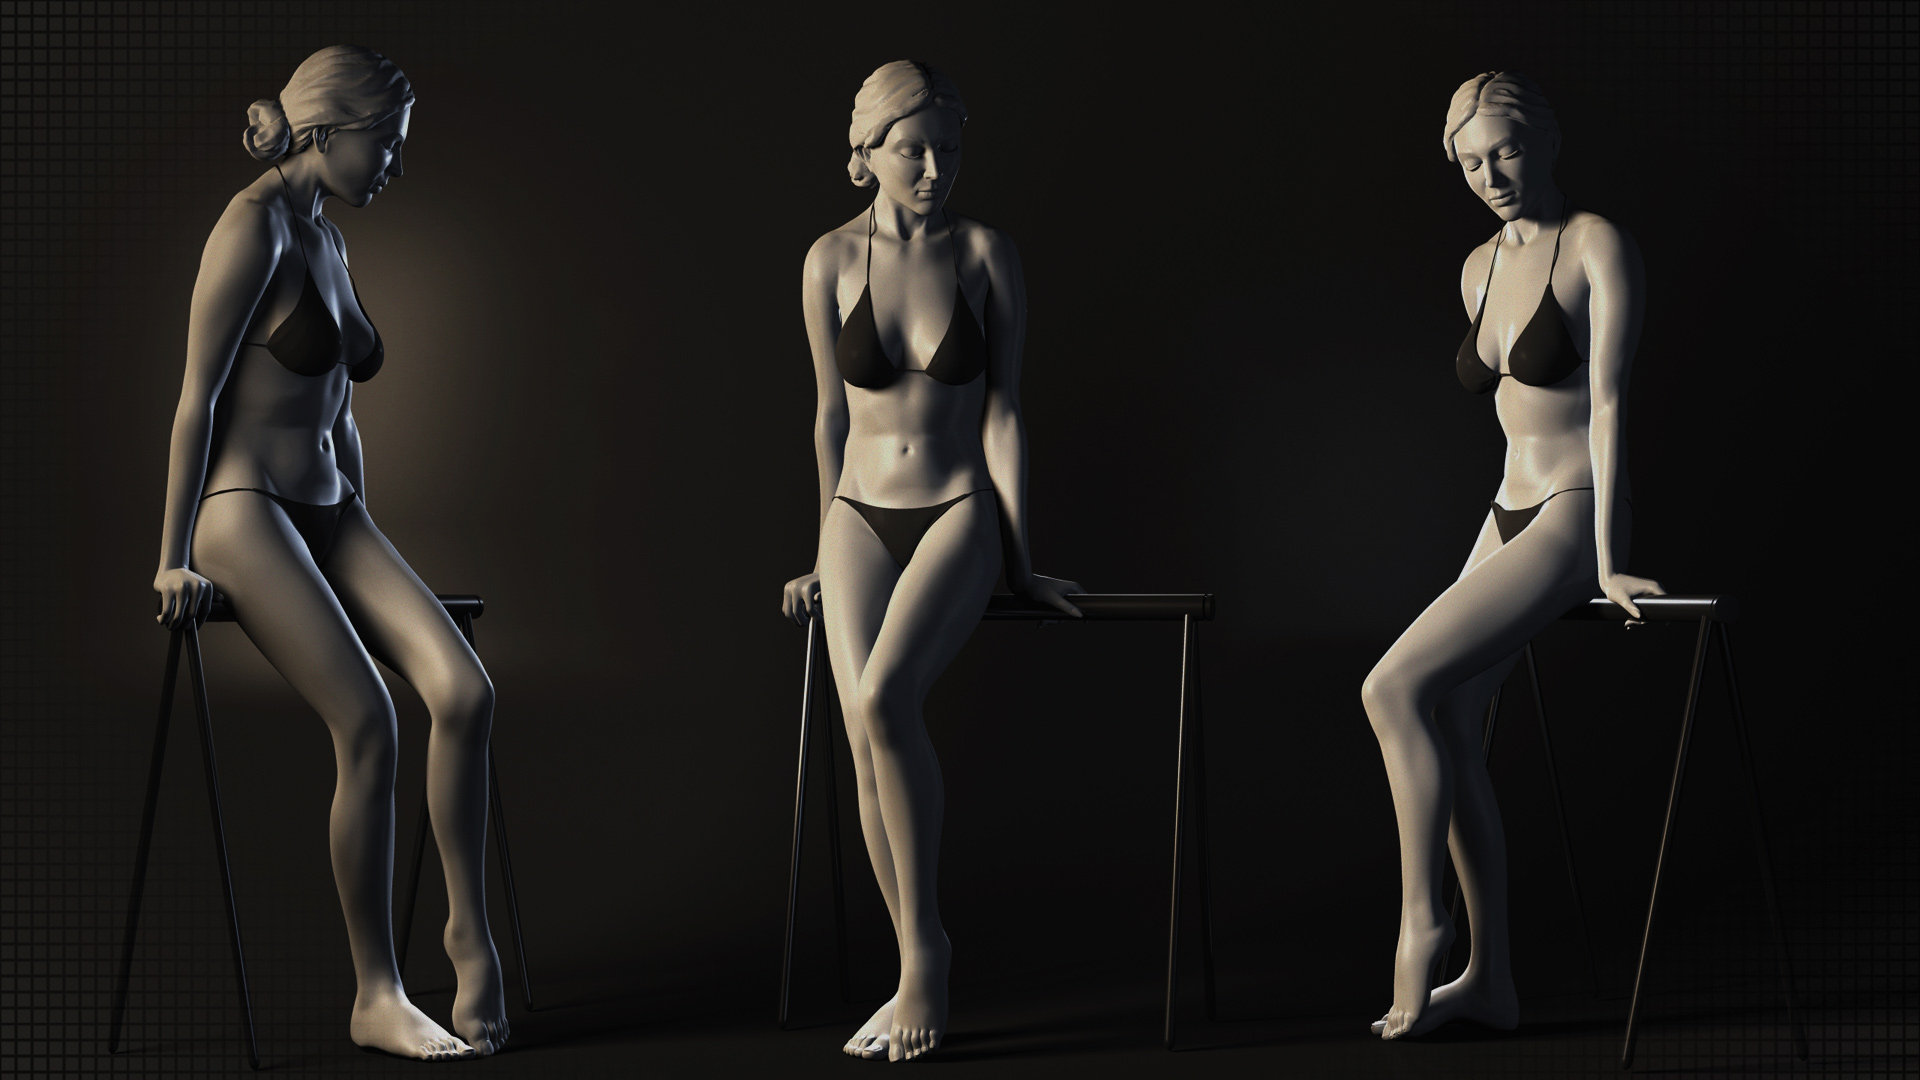 ArtStation - Female Anatomy Sculpt Study, Robin Brockötter